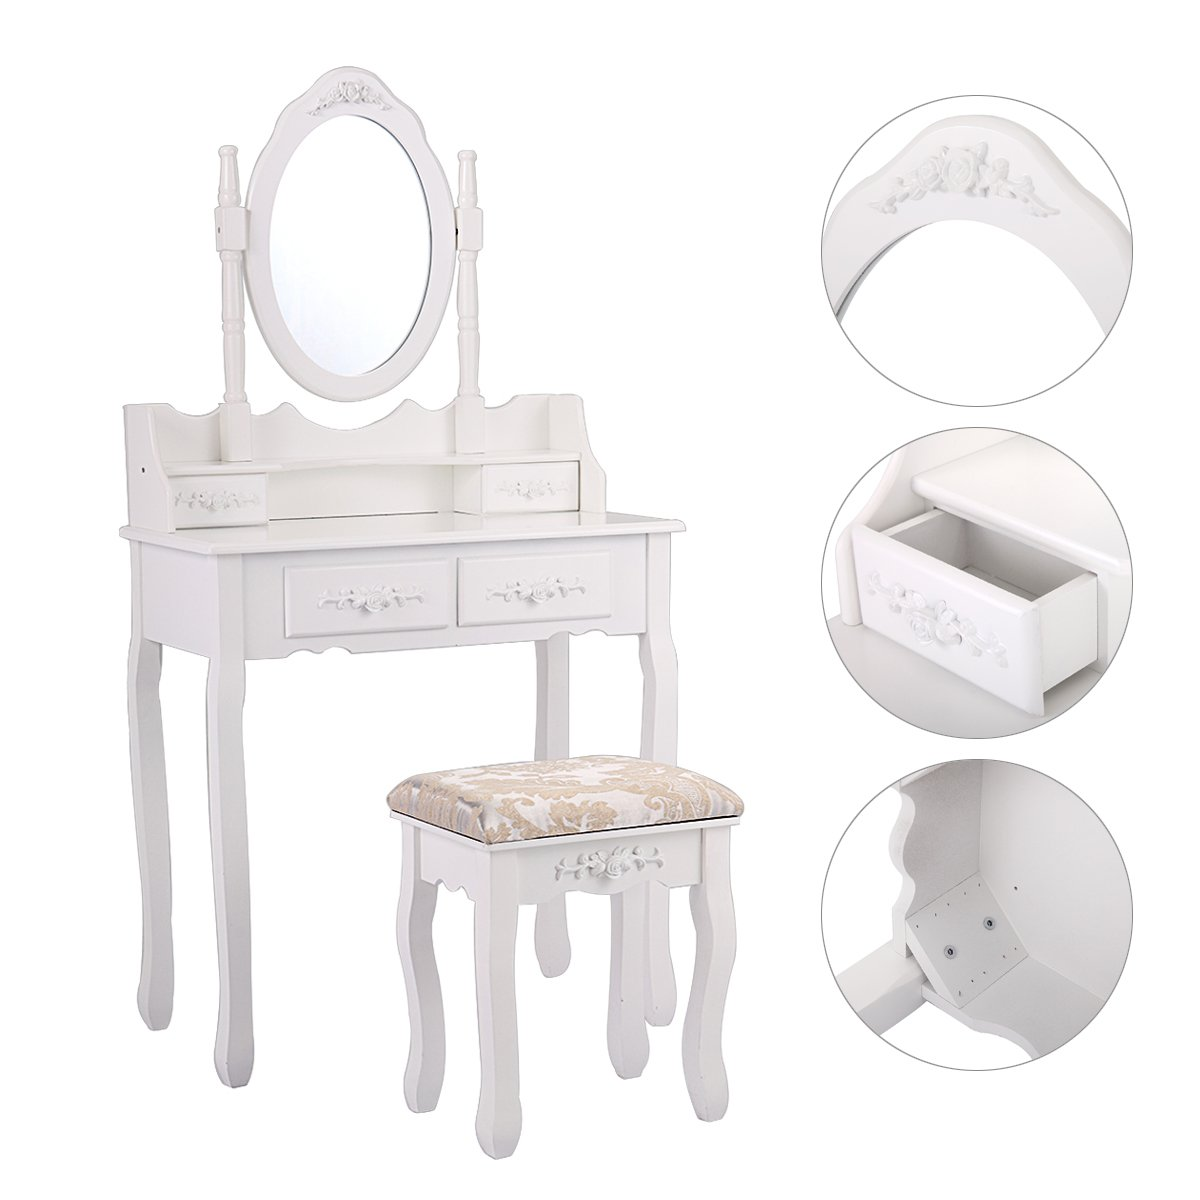 JAXPETY 4 Drawers Classic Vanity Table Set with Mirror and Cushioned Stool Makeup Dressing Table Organizer Bedroom, White